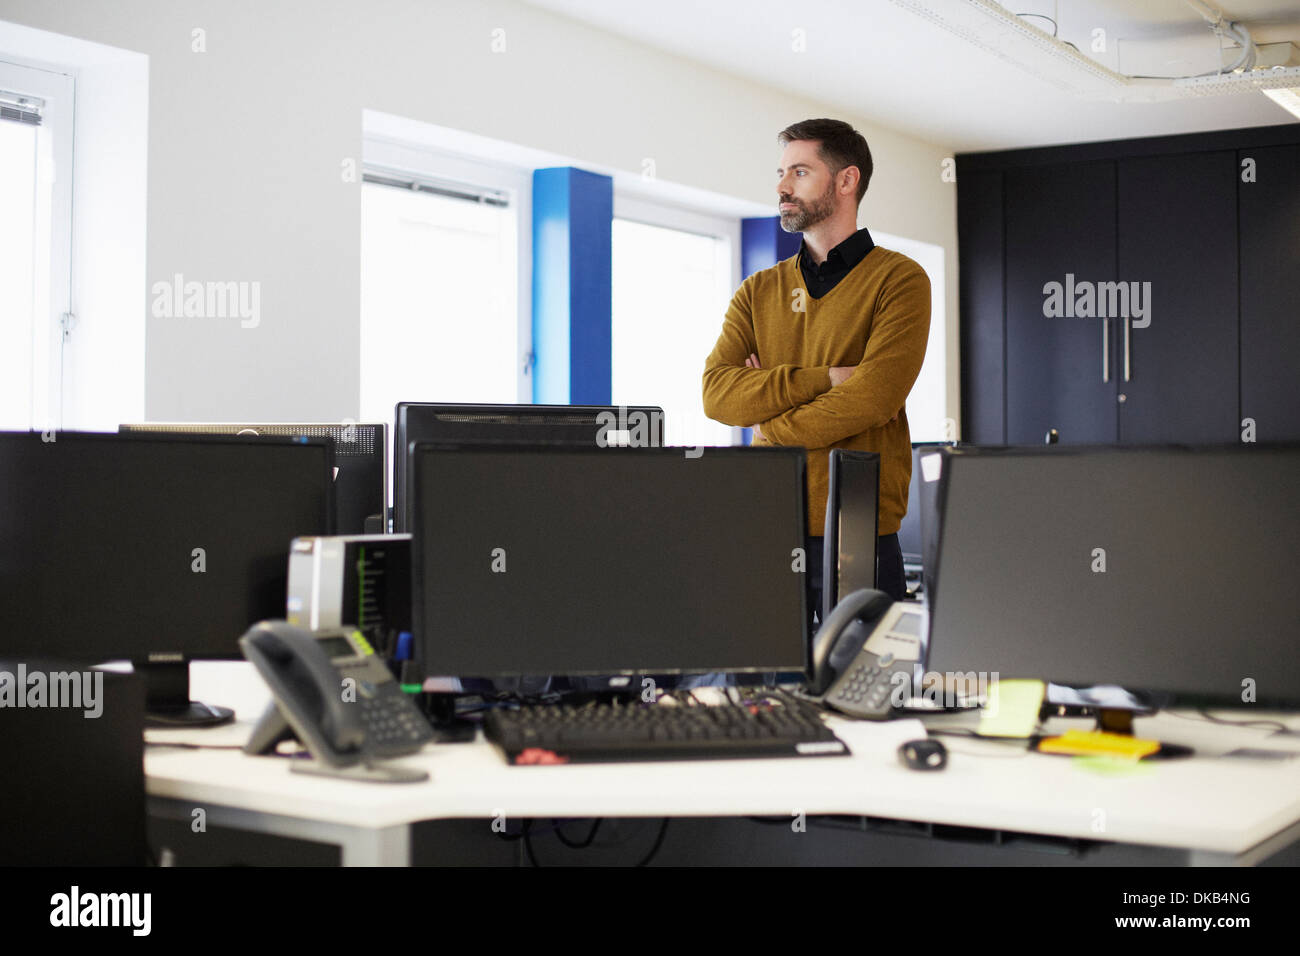 Businessman in office Photo Stock